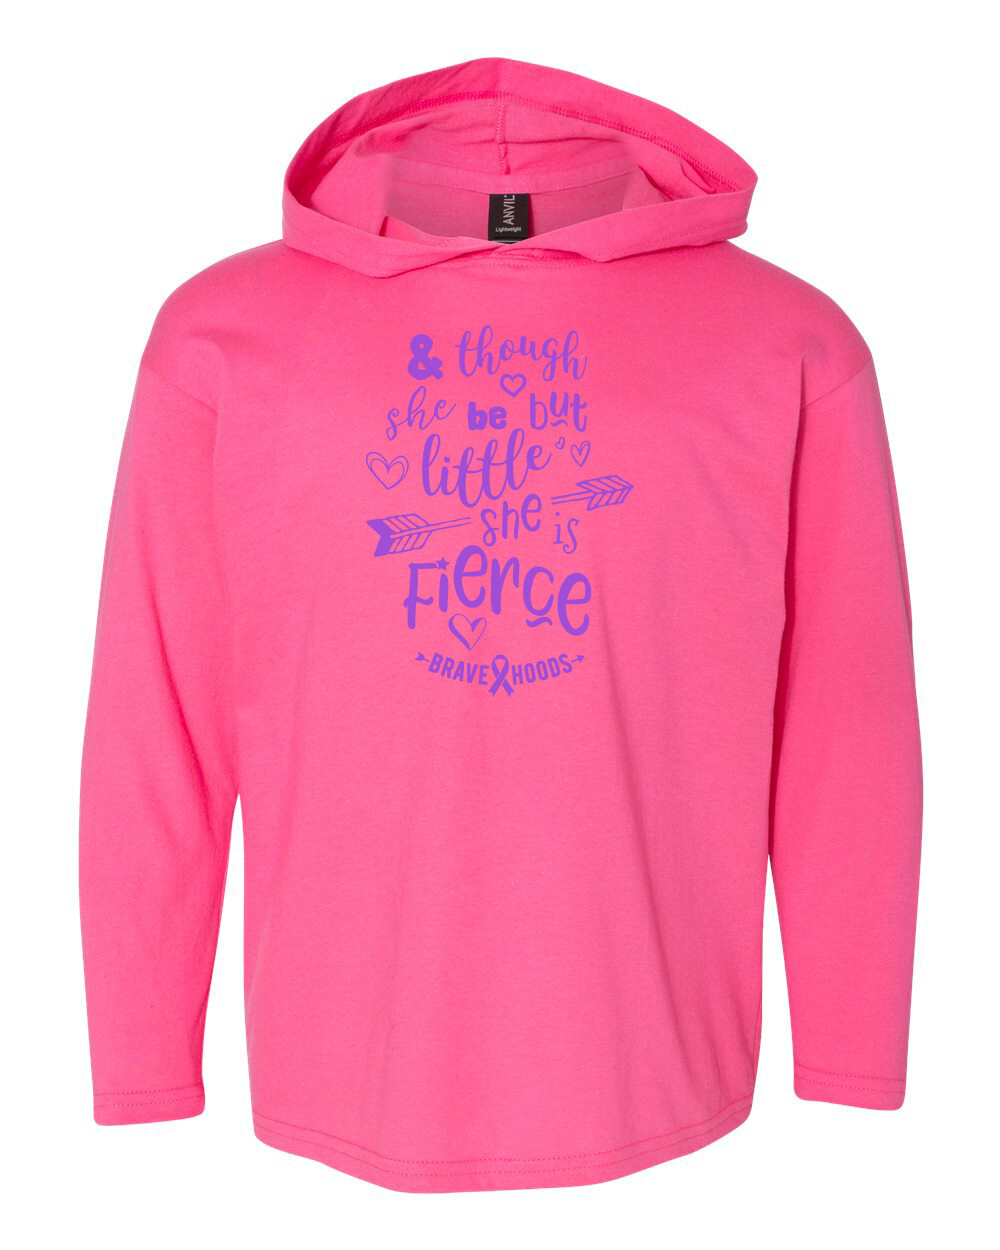 Little but Fierce Hoodie - Girls' Pullover